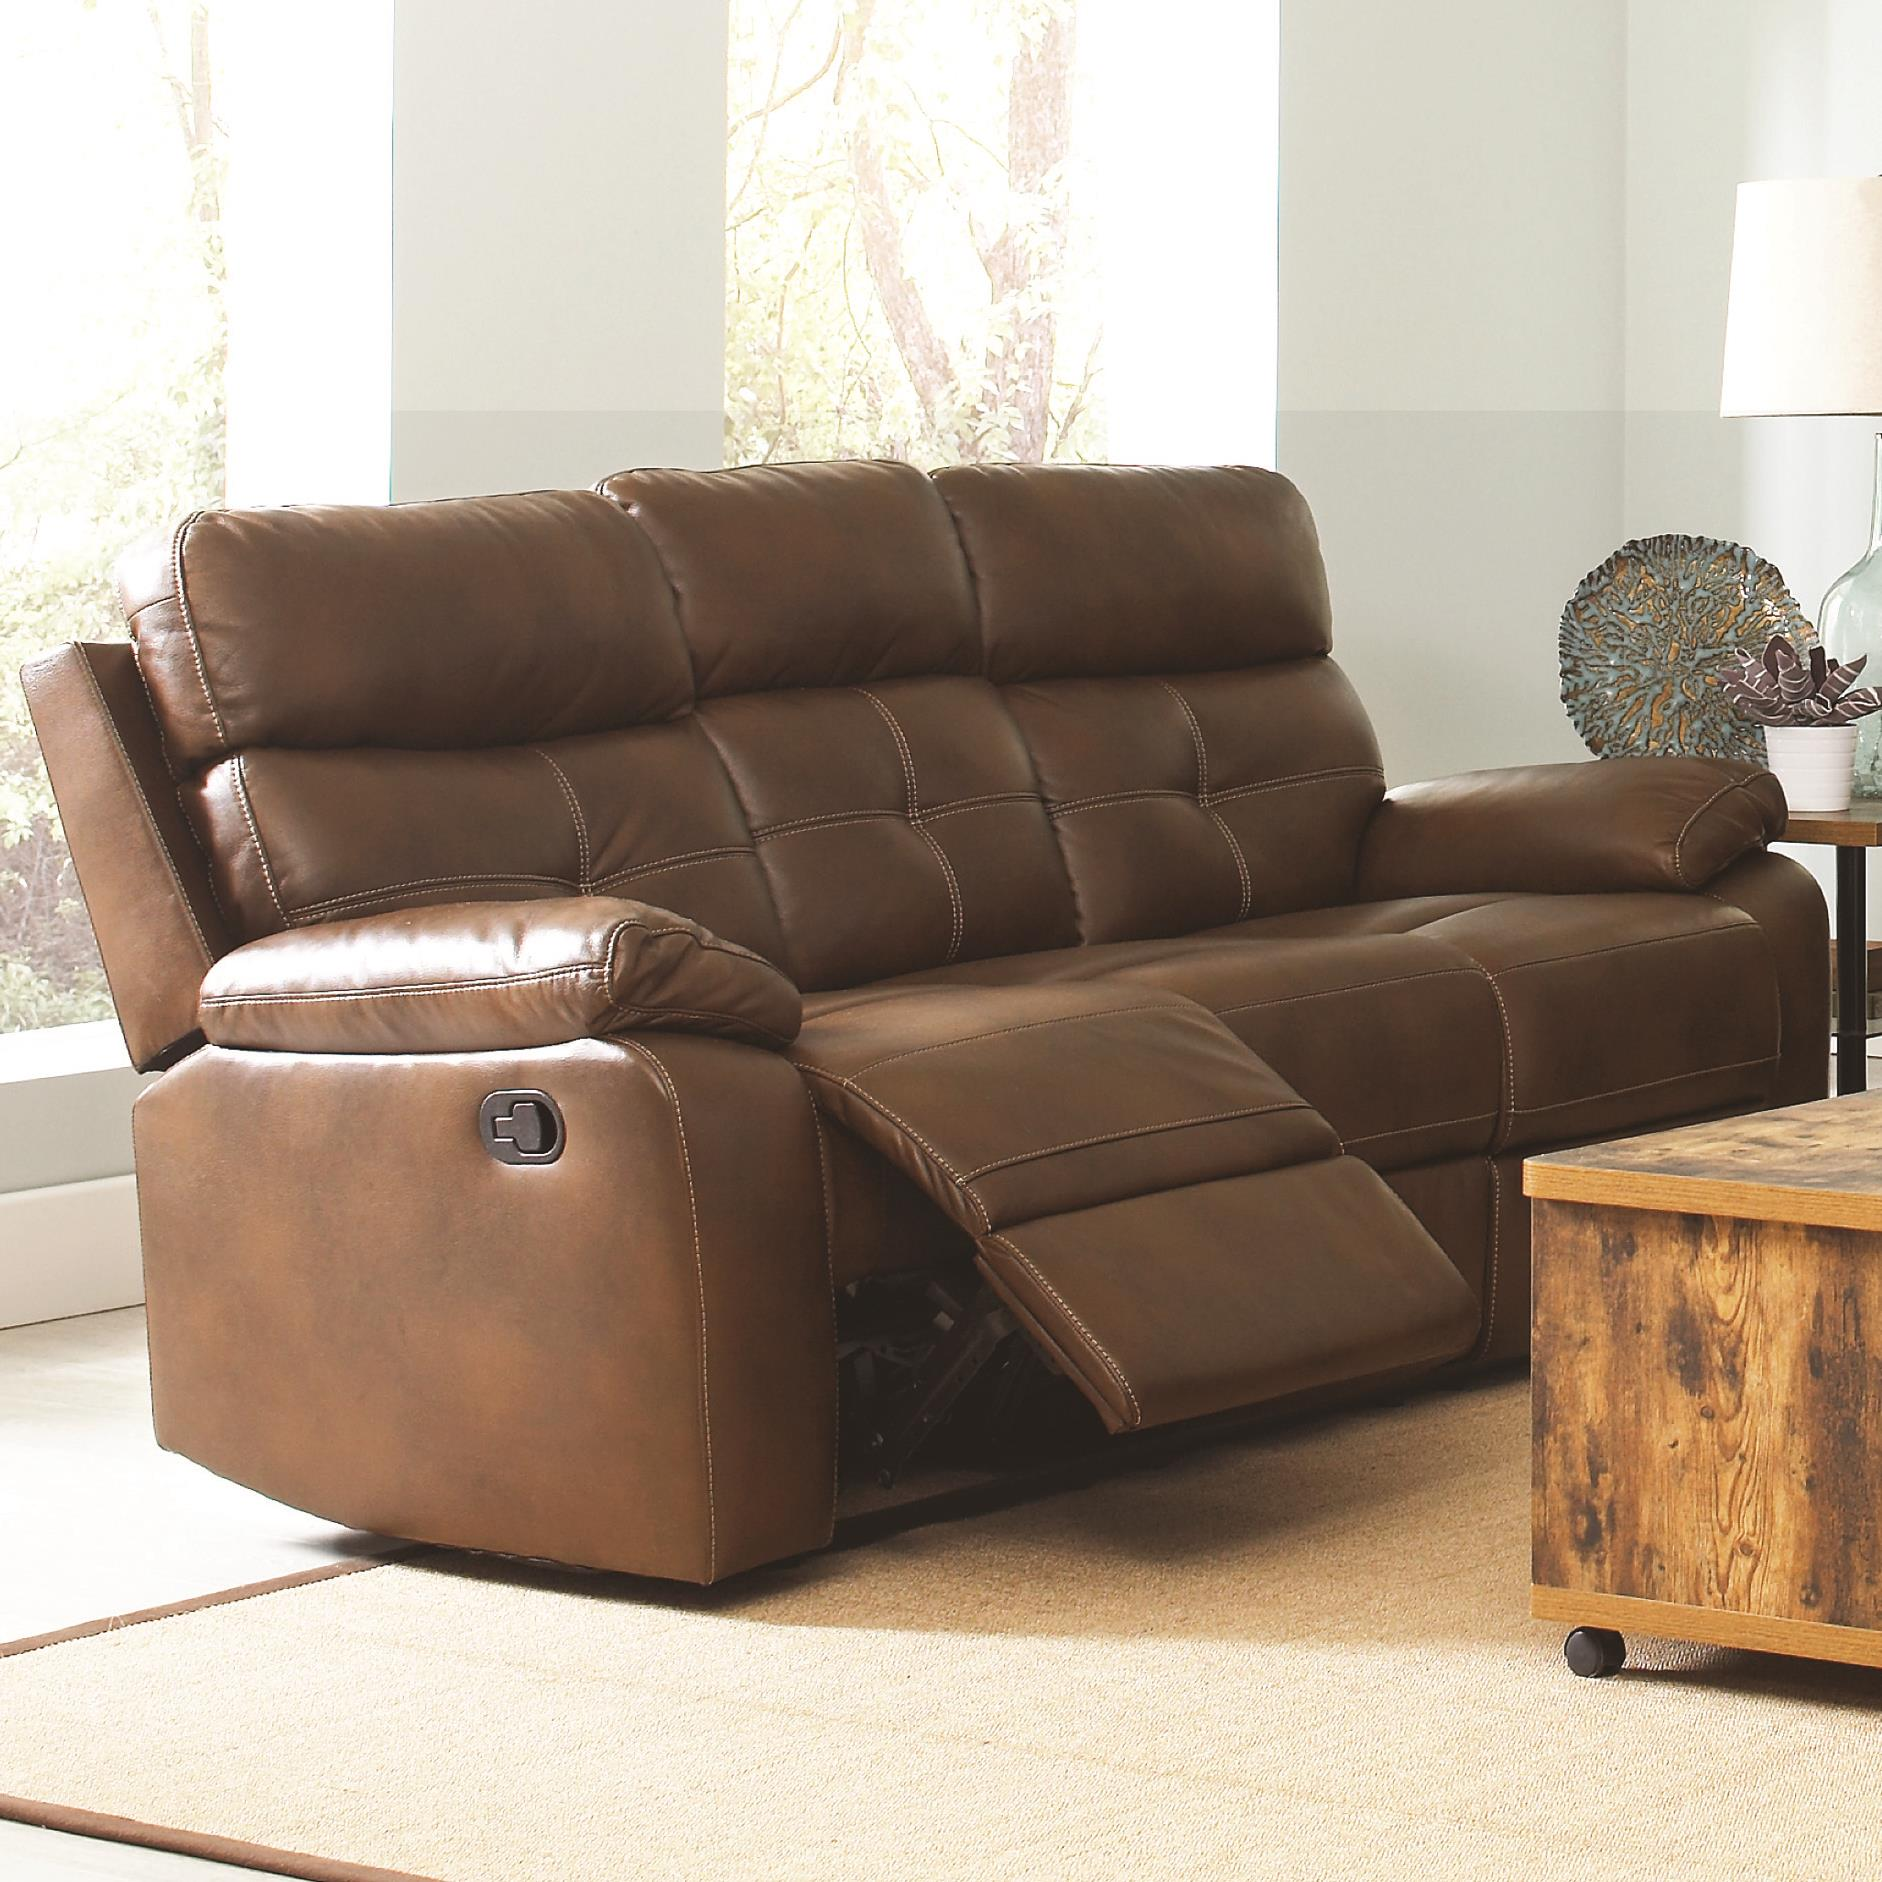 Coaster damiano 601691 casual faux leather reclining sofa with button tuft detailing dunk for Faux leather living room furniture